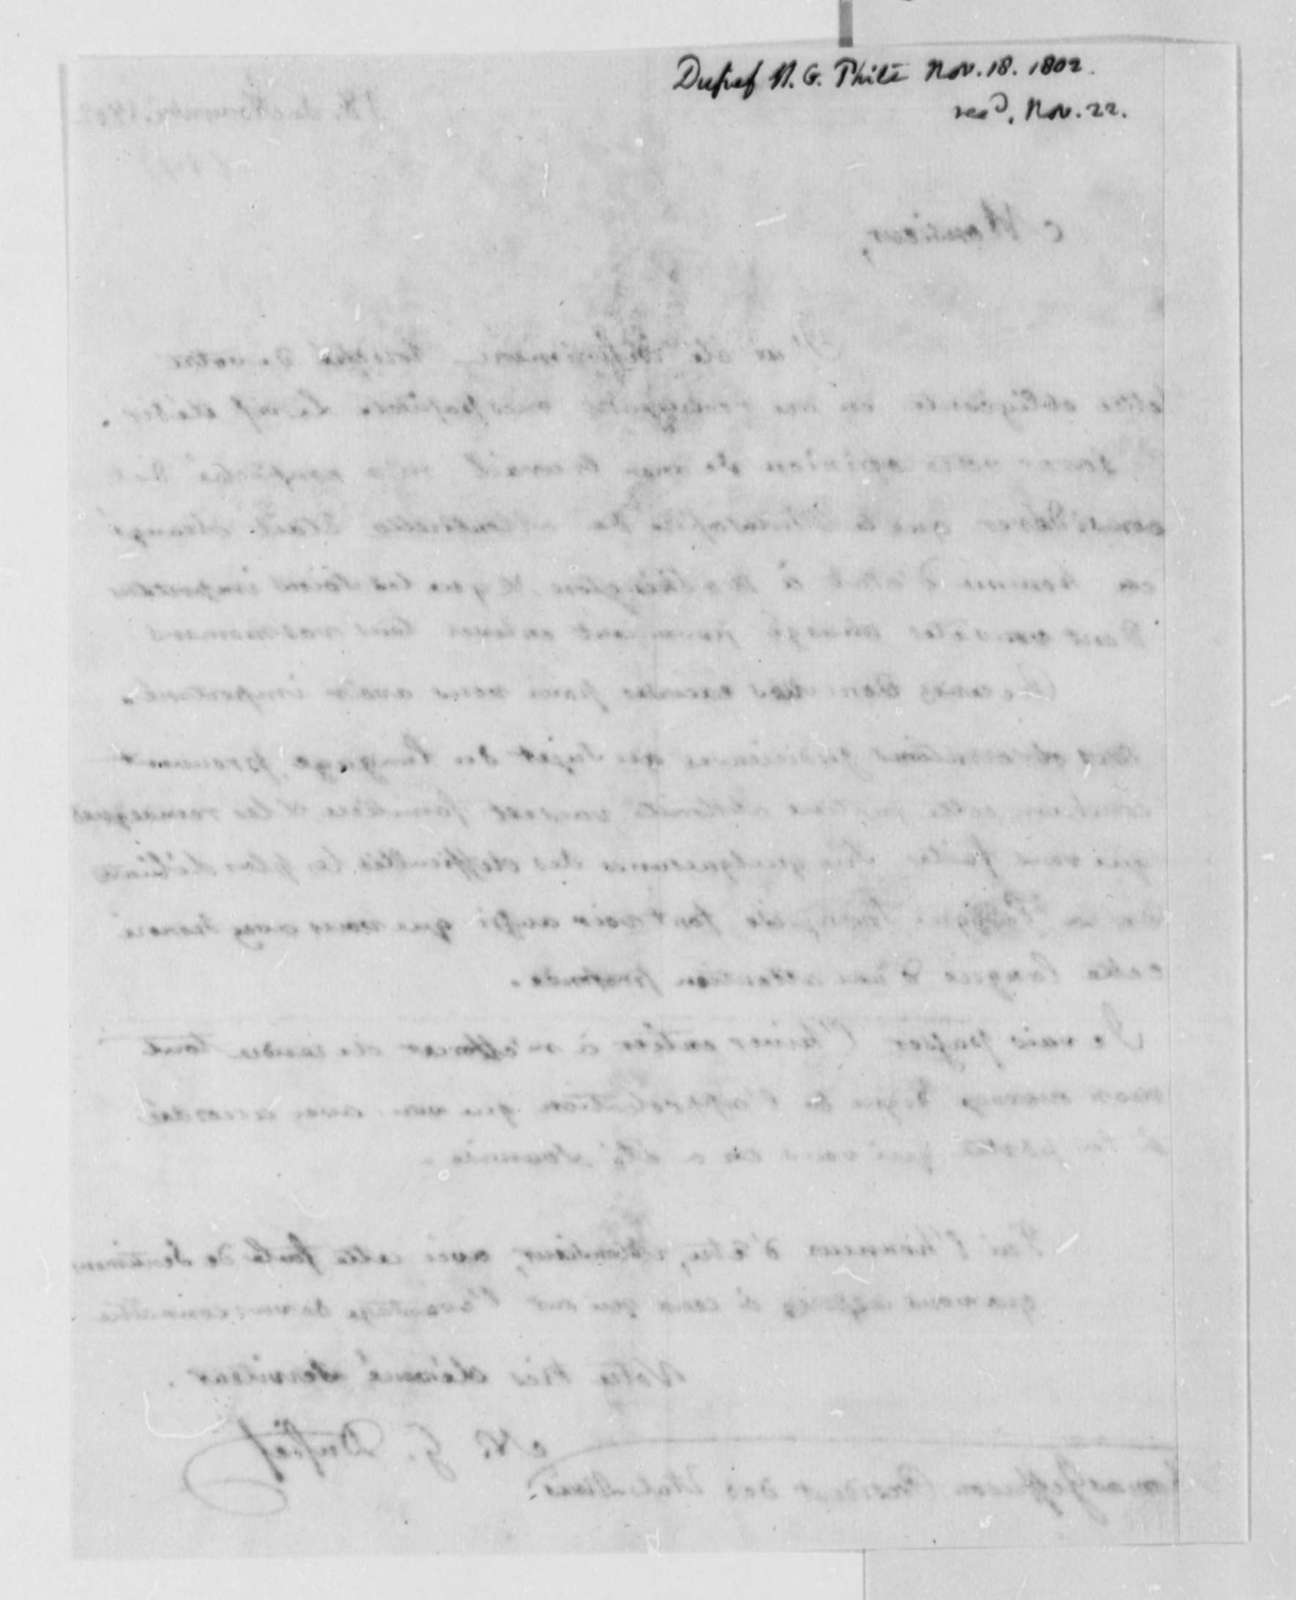 Nicholas Gouin Dufief to Thomas Jefferson, November 18, 1802, in French